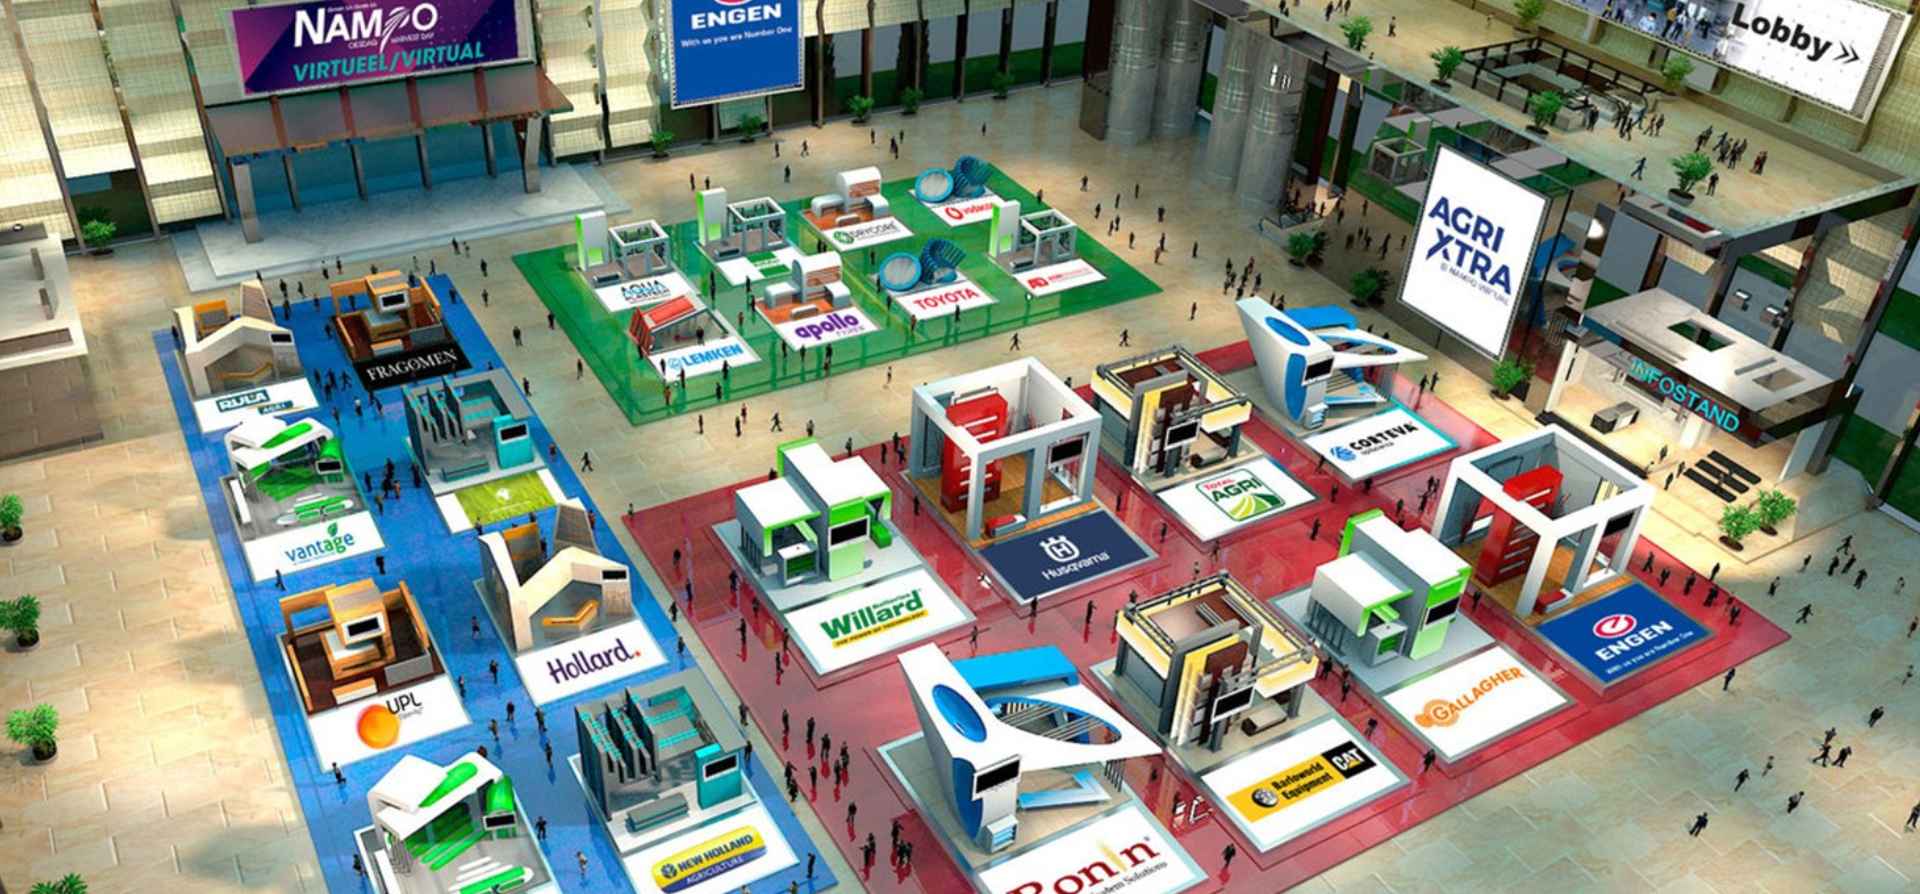 nampo-virtual-exhibition